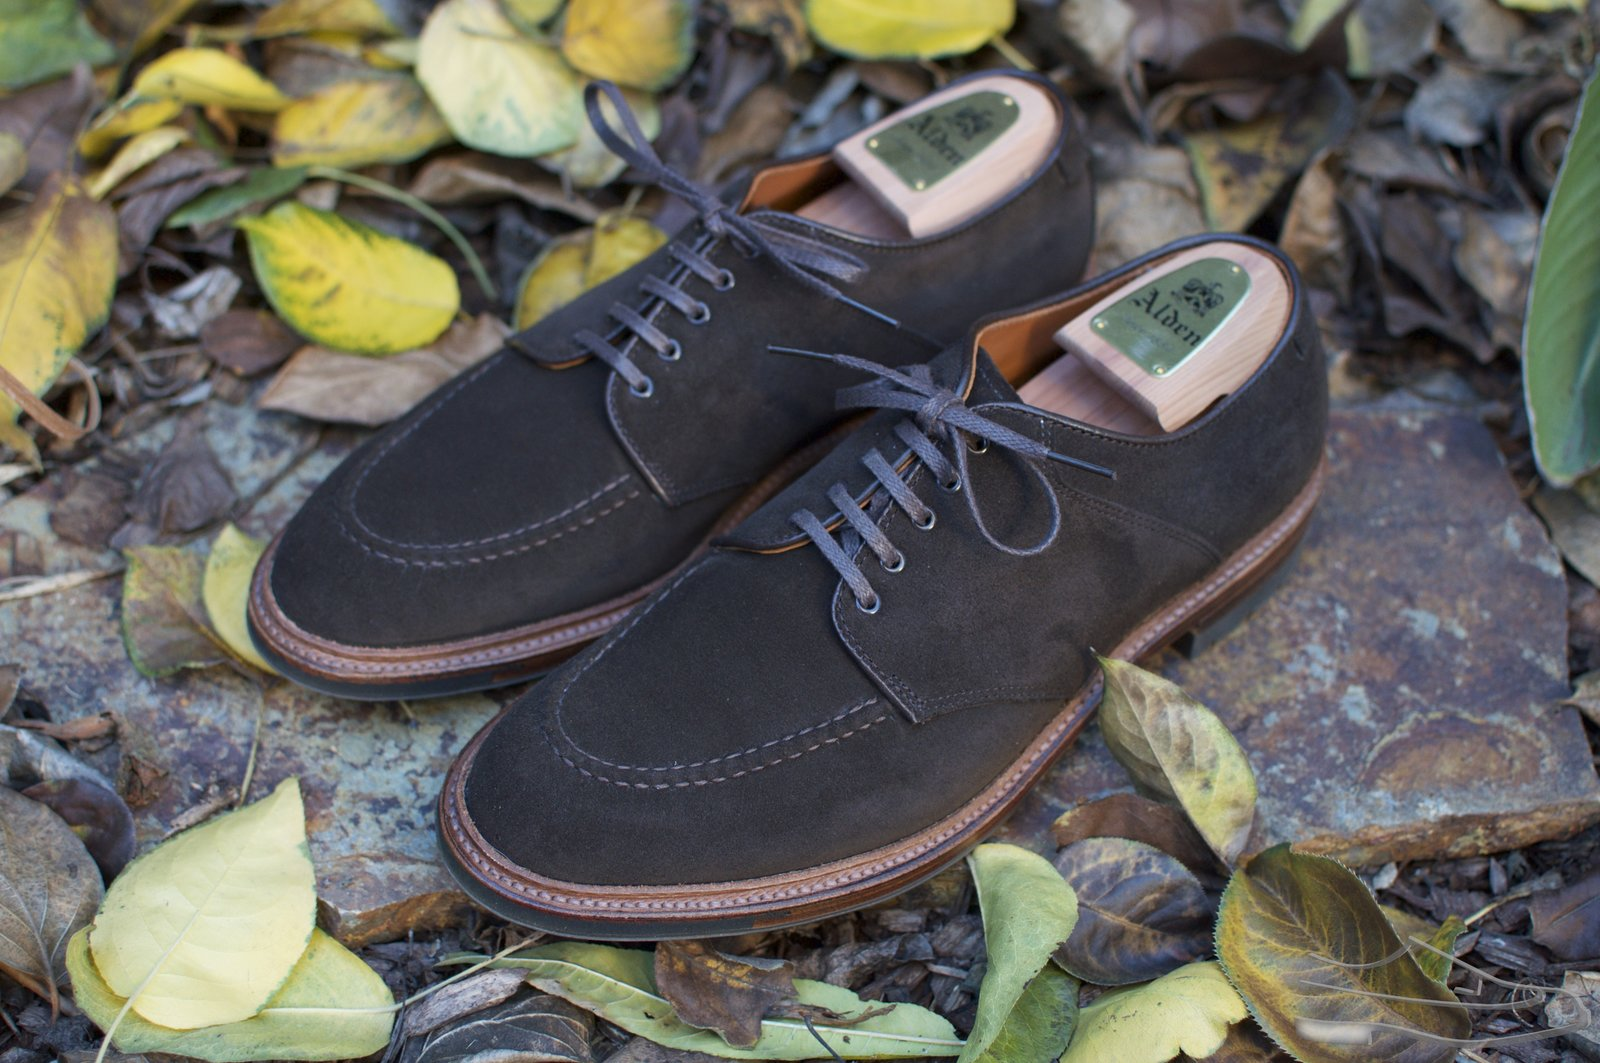 Alden Choco Suede U-Tip Saddle Shoes - 2020-11-28 - 1.jpg